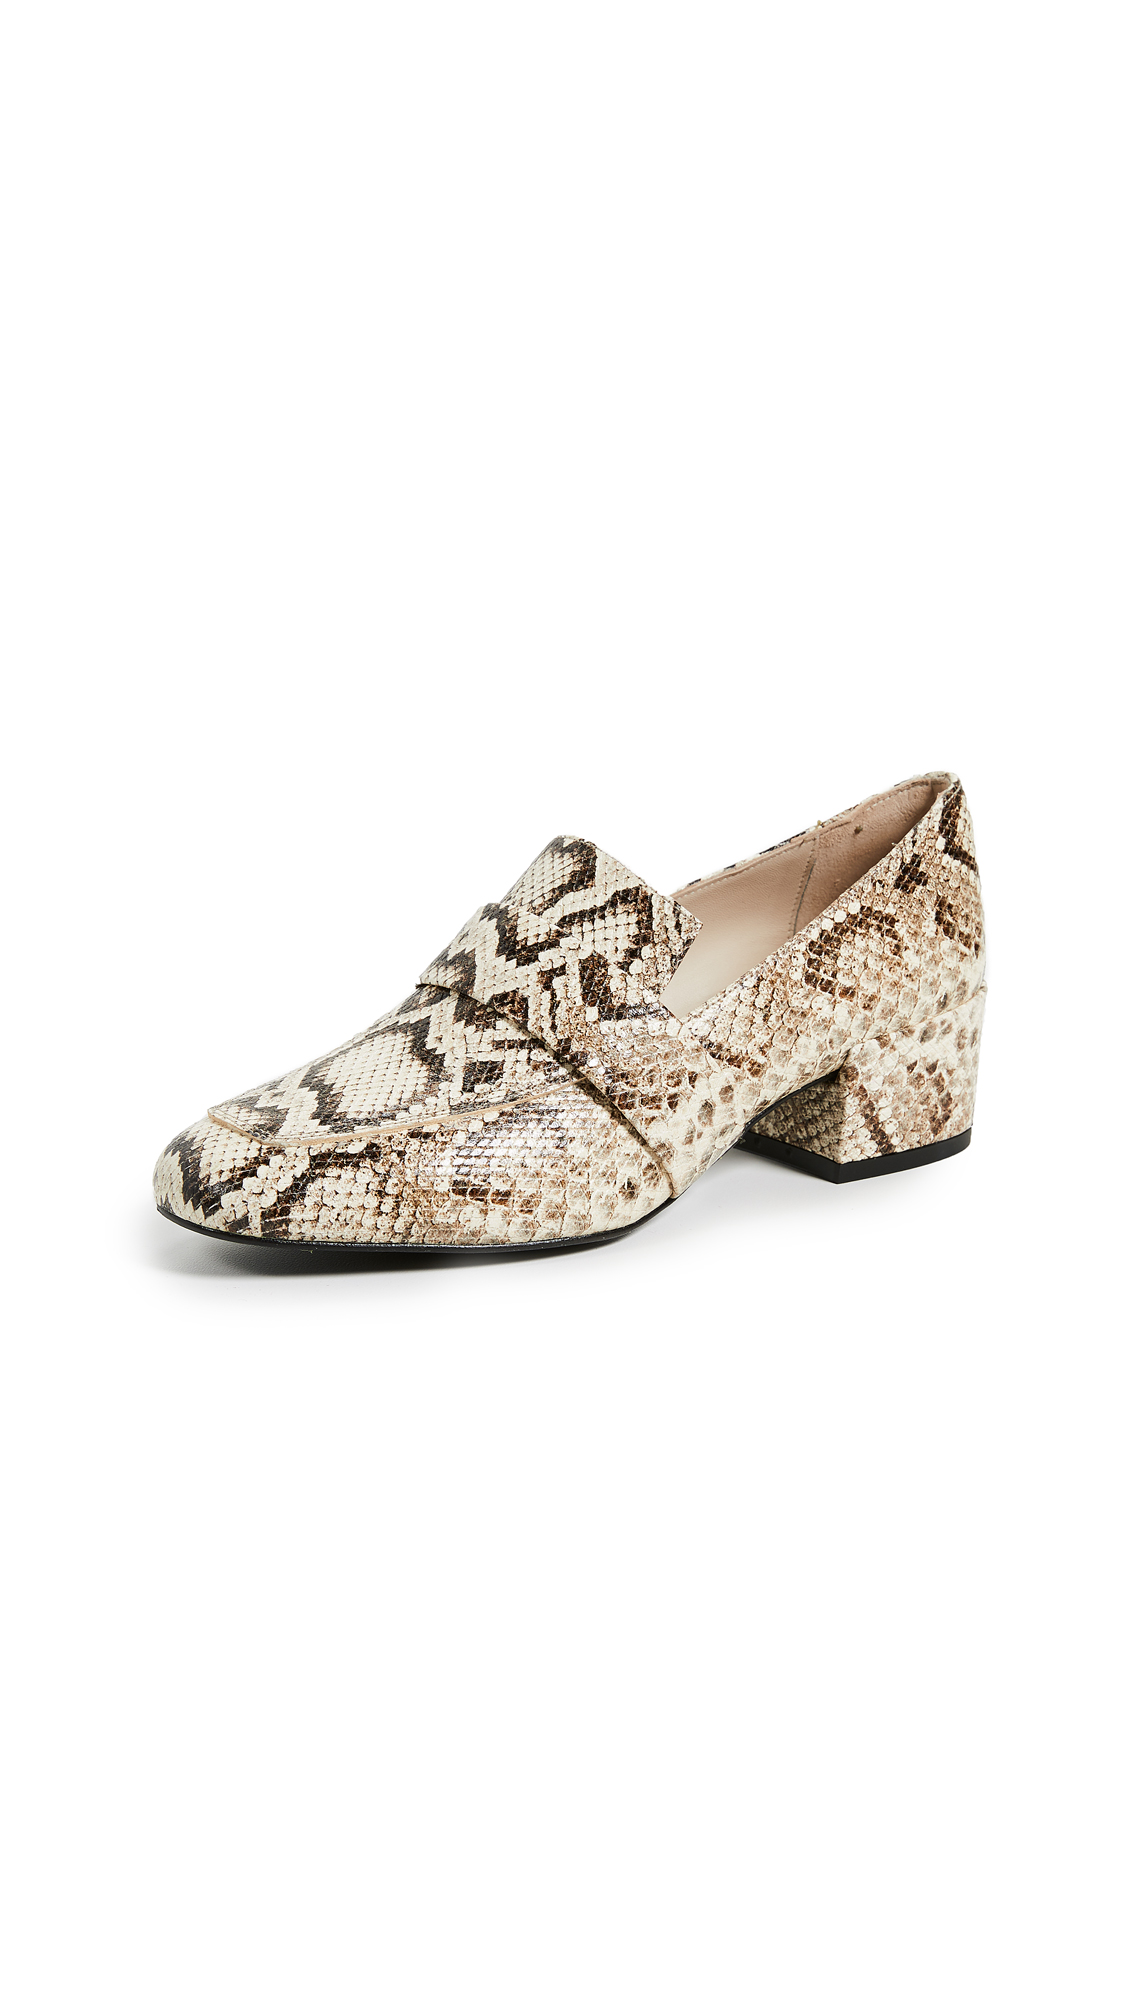 Freda Salvador Rock Loafer Pumps - Vanilla